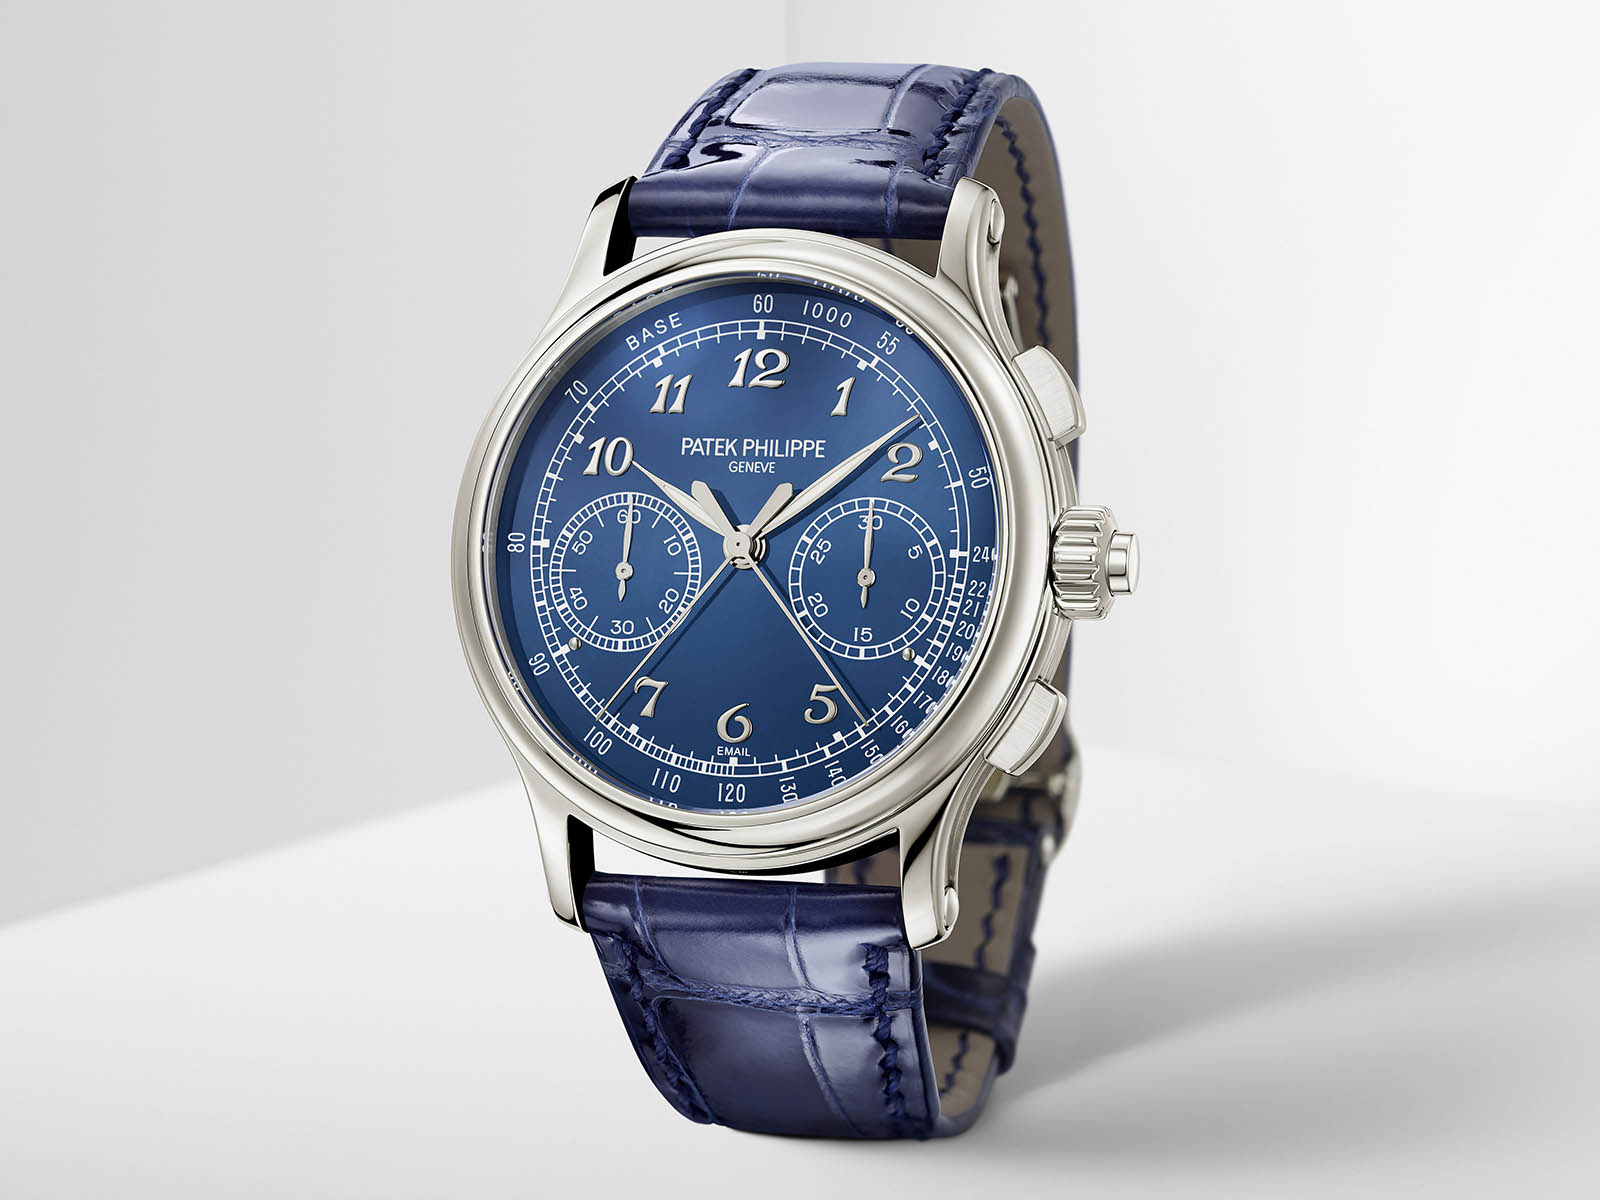 5370p-011-patek-philippe-5370p-split-second-chronograph-2.jpg